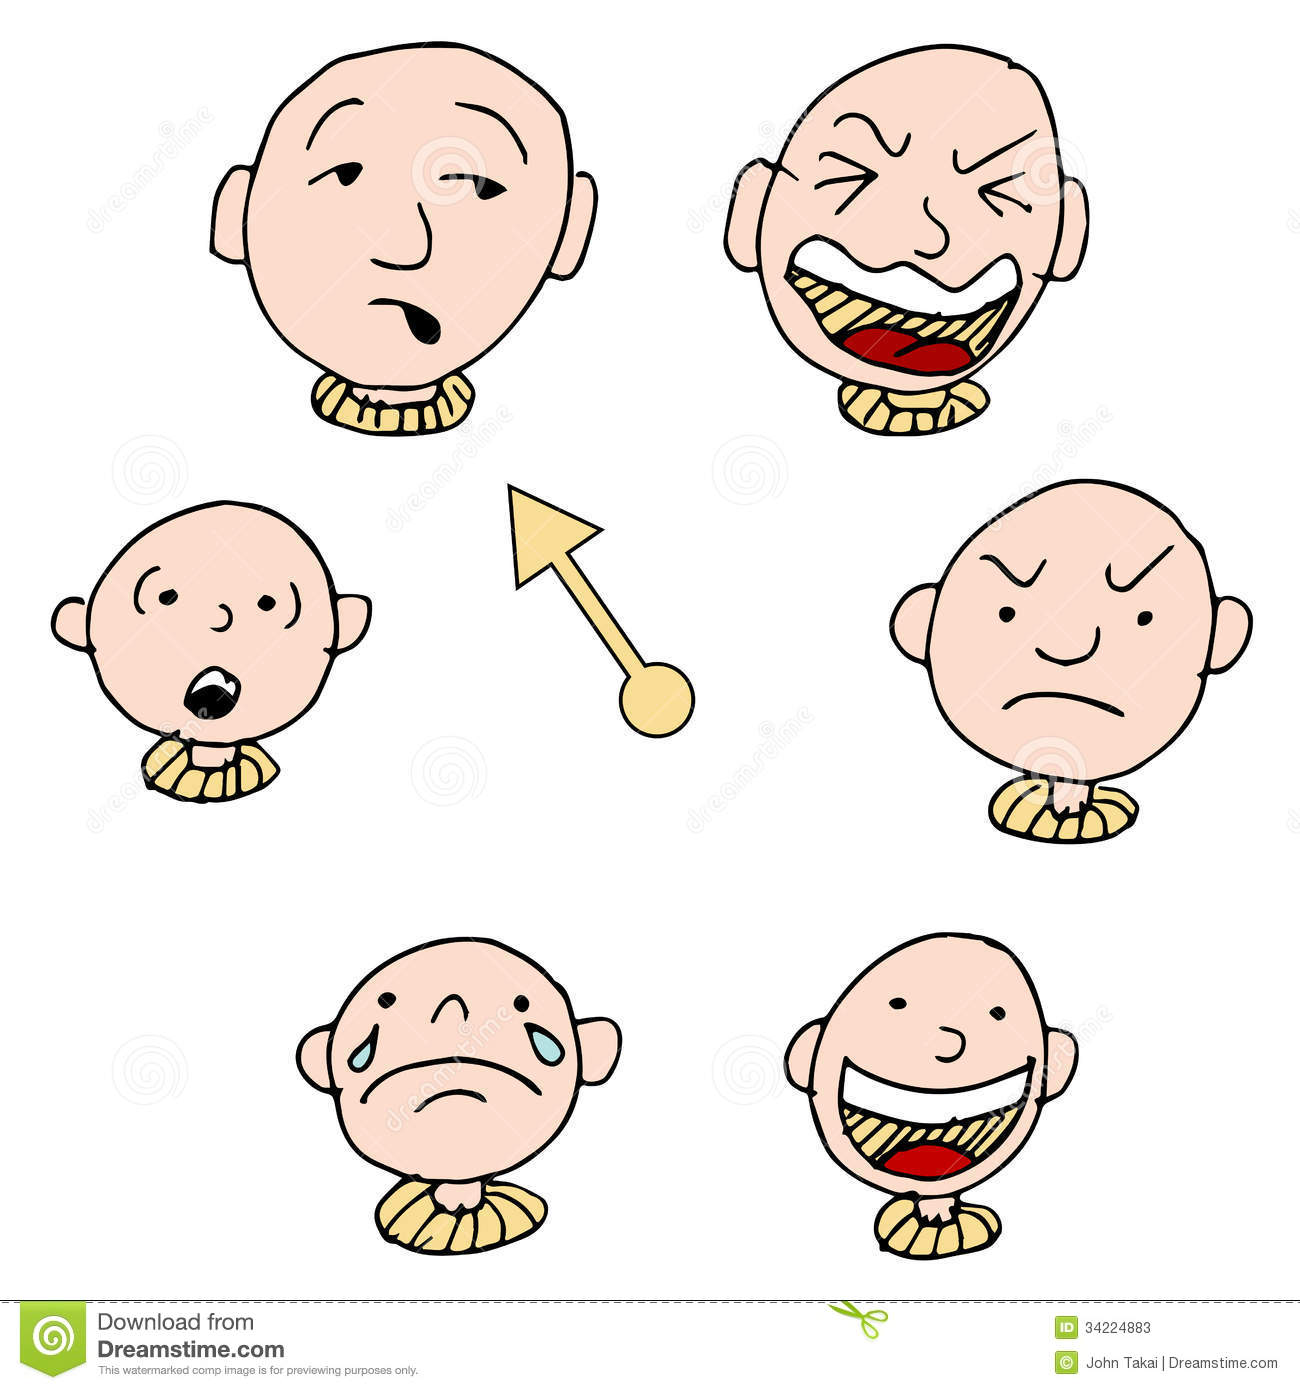 Moods clipart - Clipground